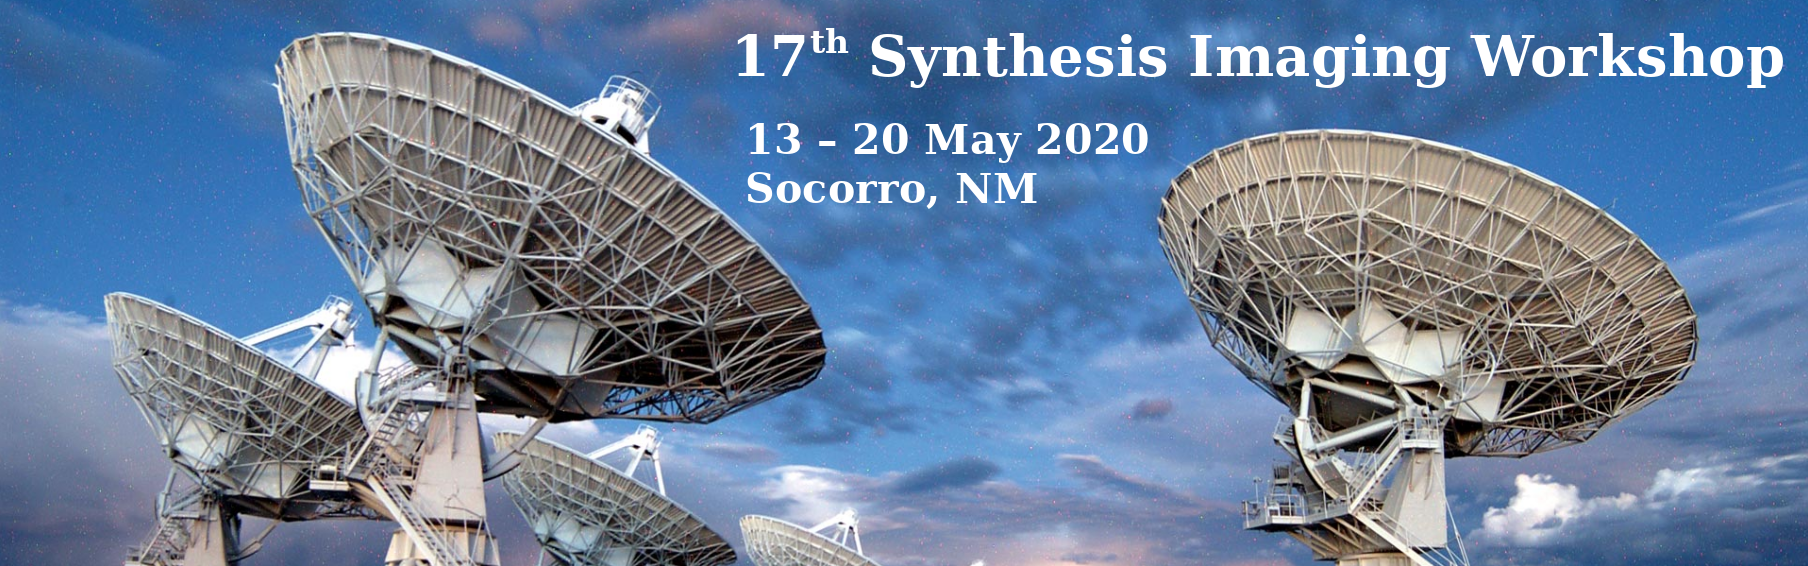 17th Synthesis Imaging Workshop